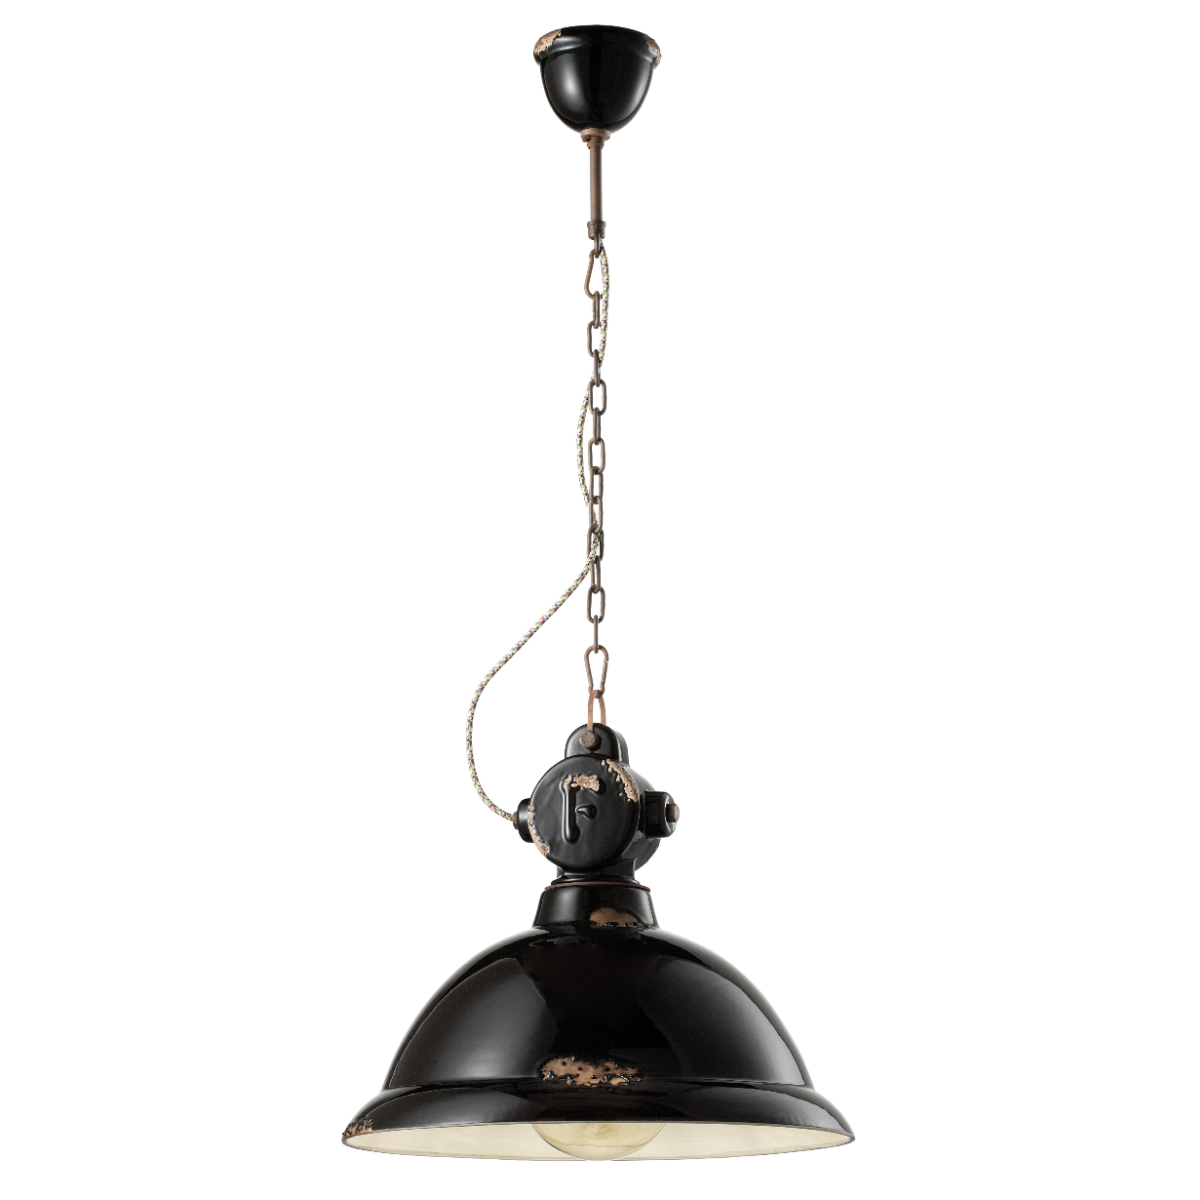 Ferroluce Industrial Pendant Light C1710 | touchGOODS